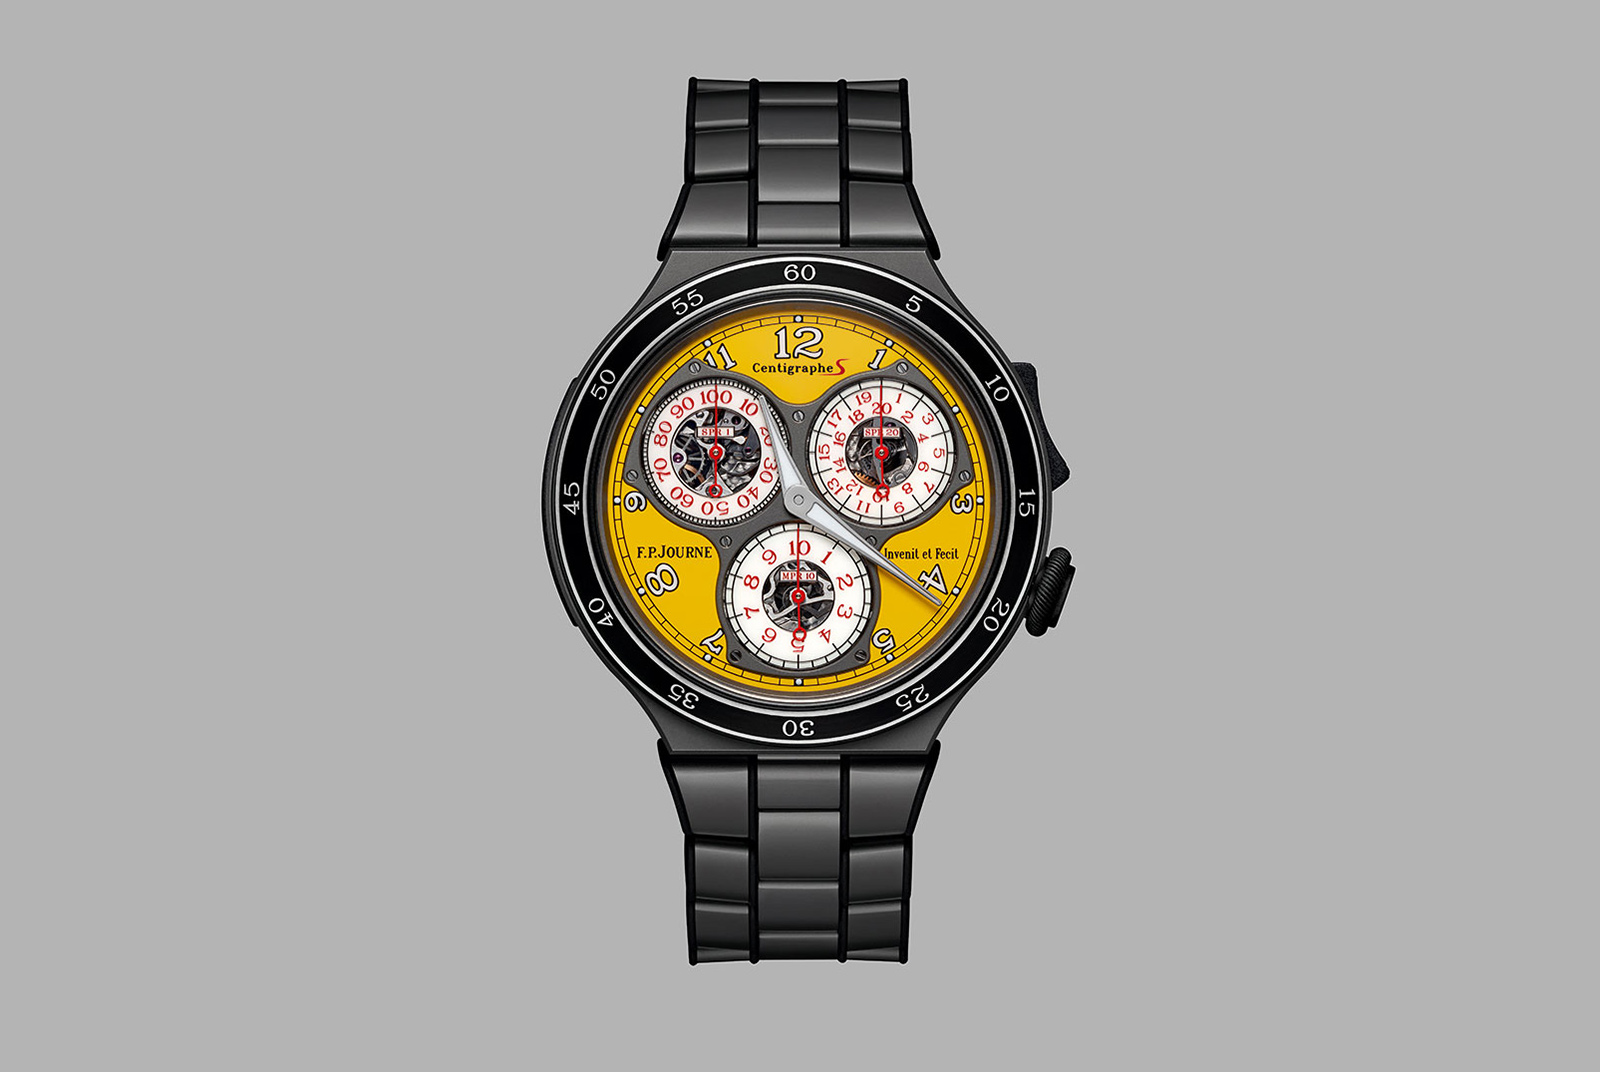 FP Journe Centigraphe Sport yellow CTS2 3